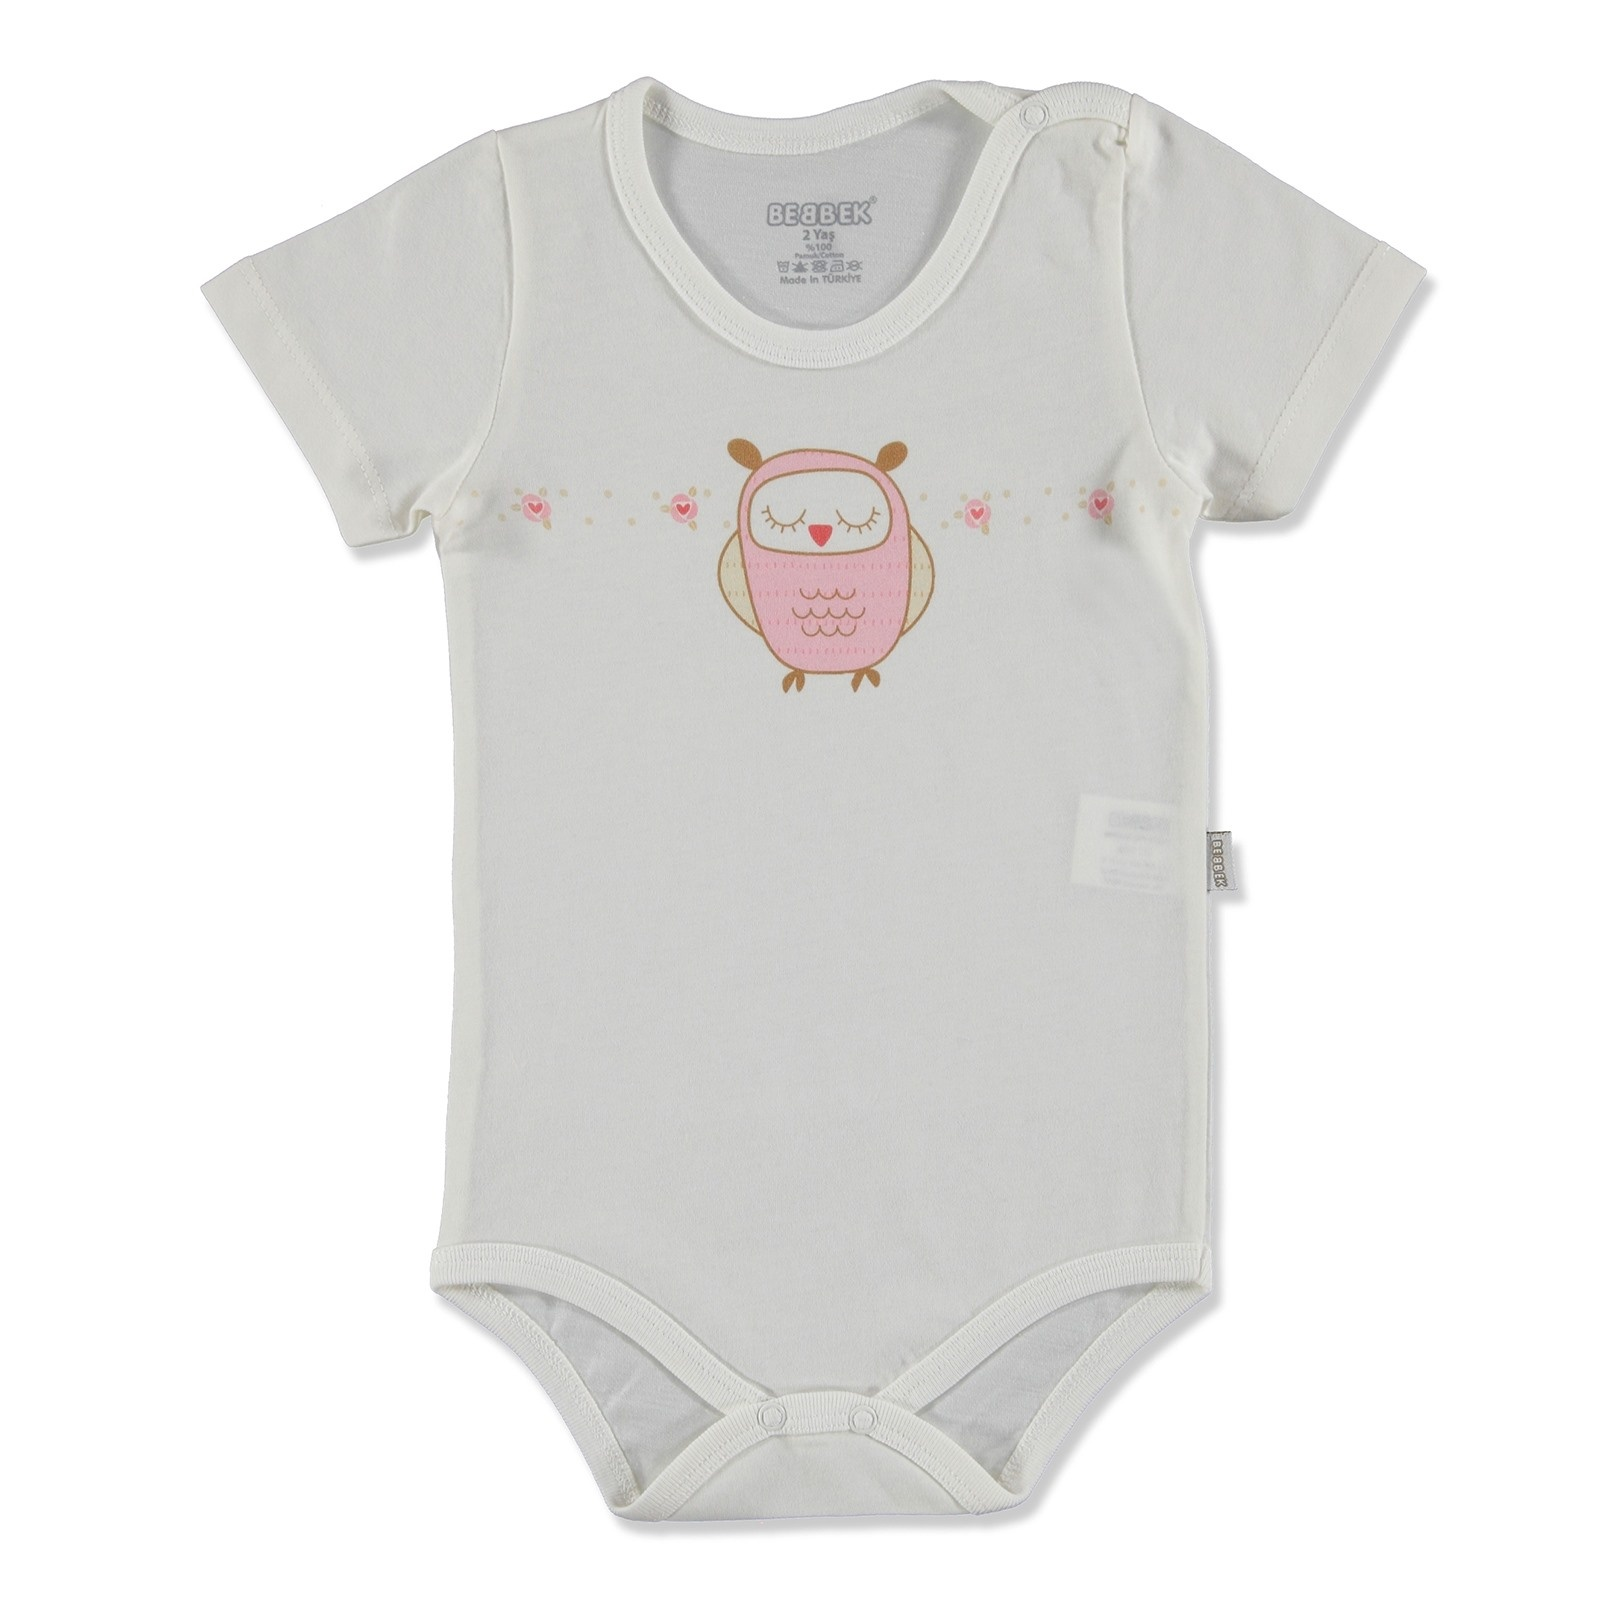 Ebebek Bebbek Summer Baby Girl Dream Big Supreme Crew-Neck Bodysuit